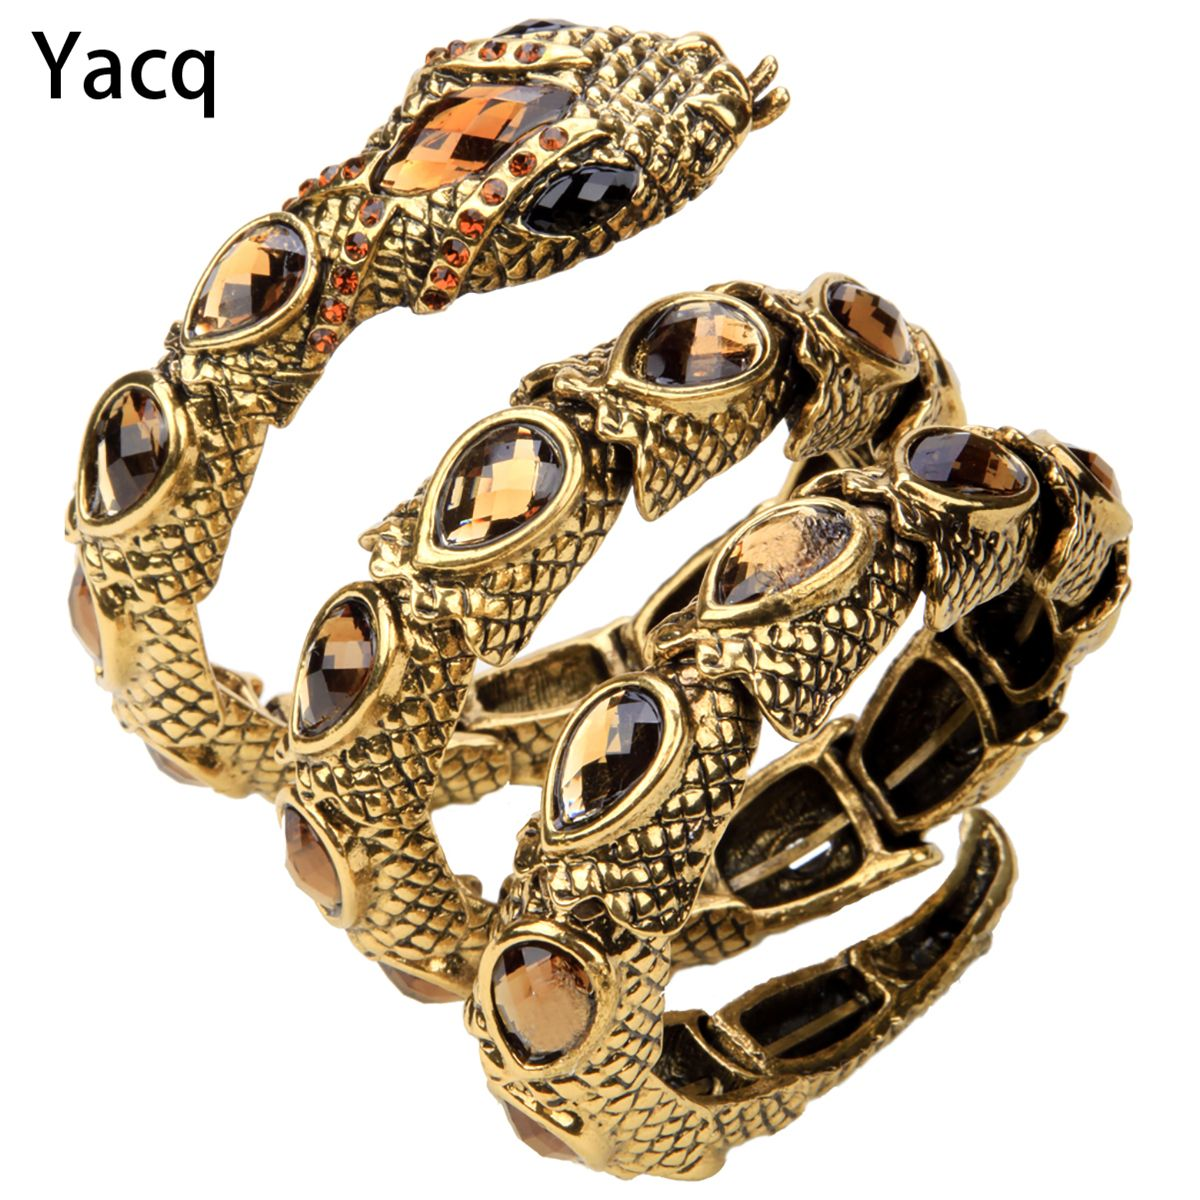 YACQ Stretch Snake Bracelet Armlet <font><b>Upper</b></font> Arm Cuff Women Punk Rock Crystal Bangle Jewelry Gold Silver Color Dropshipping A32